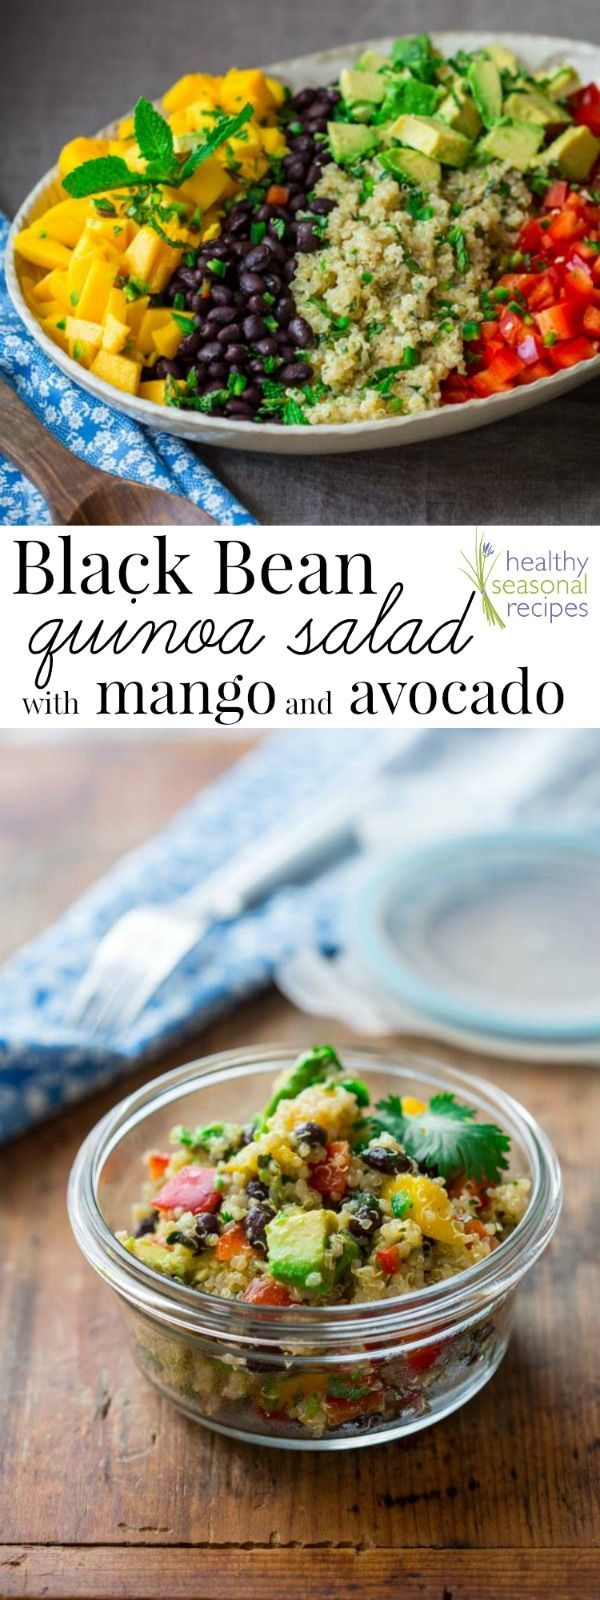 black bean quinoa salad with mango and avocado | This would taste so delicious wrapped in a tortilla!